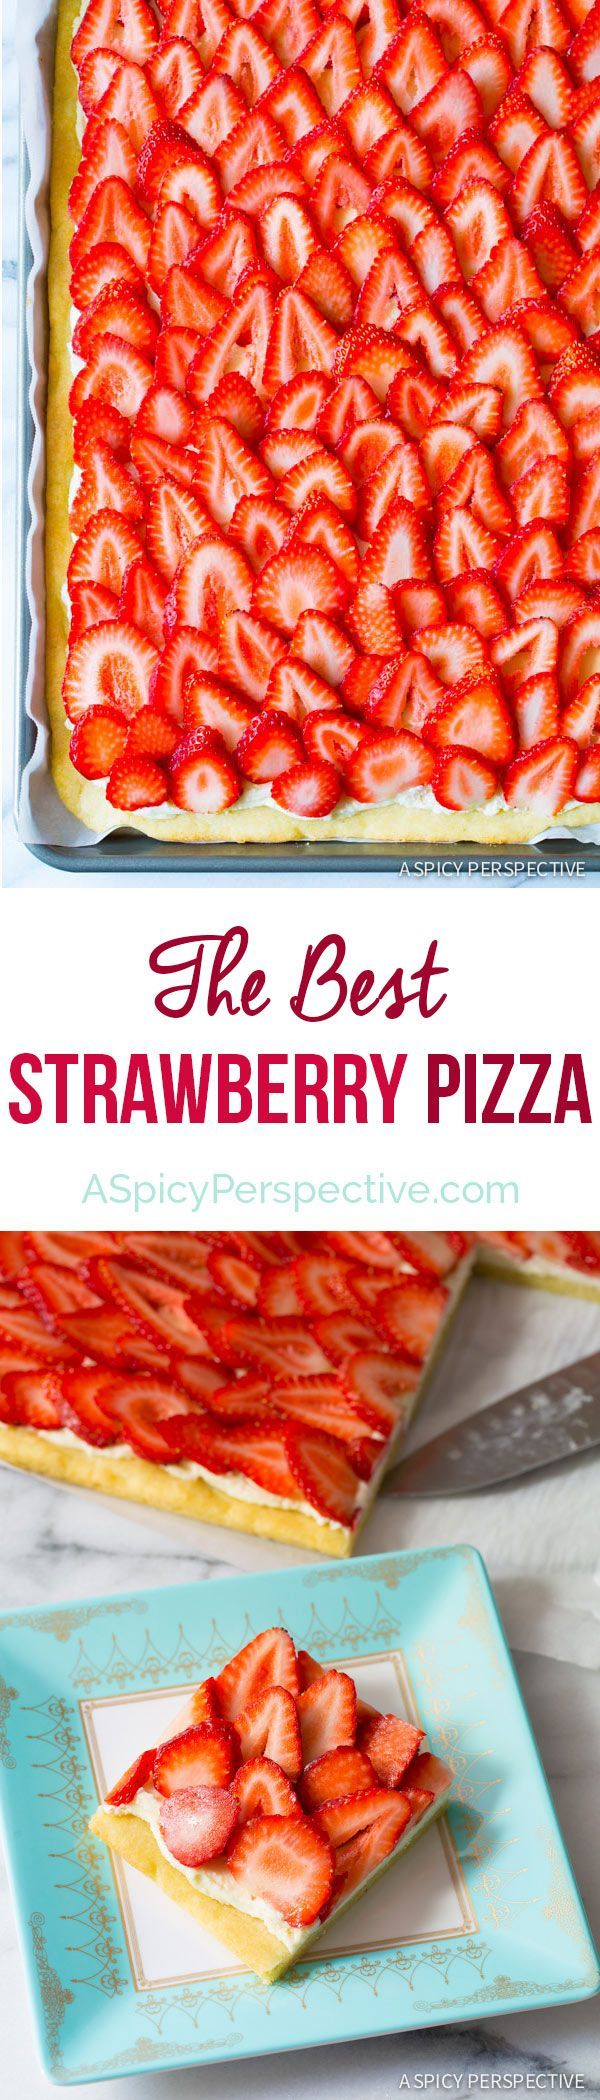 The Absolute BEST Strawberry Pizza - on http://ASpicyPerspective.com #strawberry #summer - going to try as individual pizzas too.